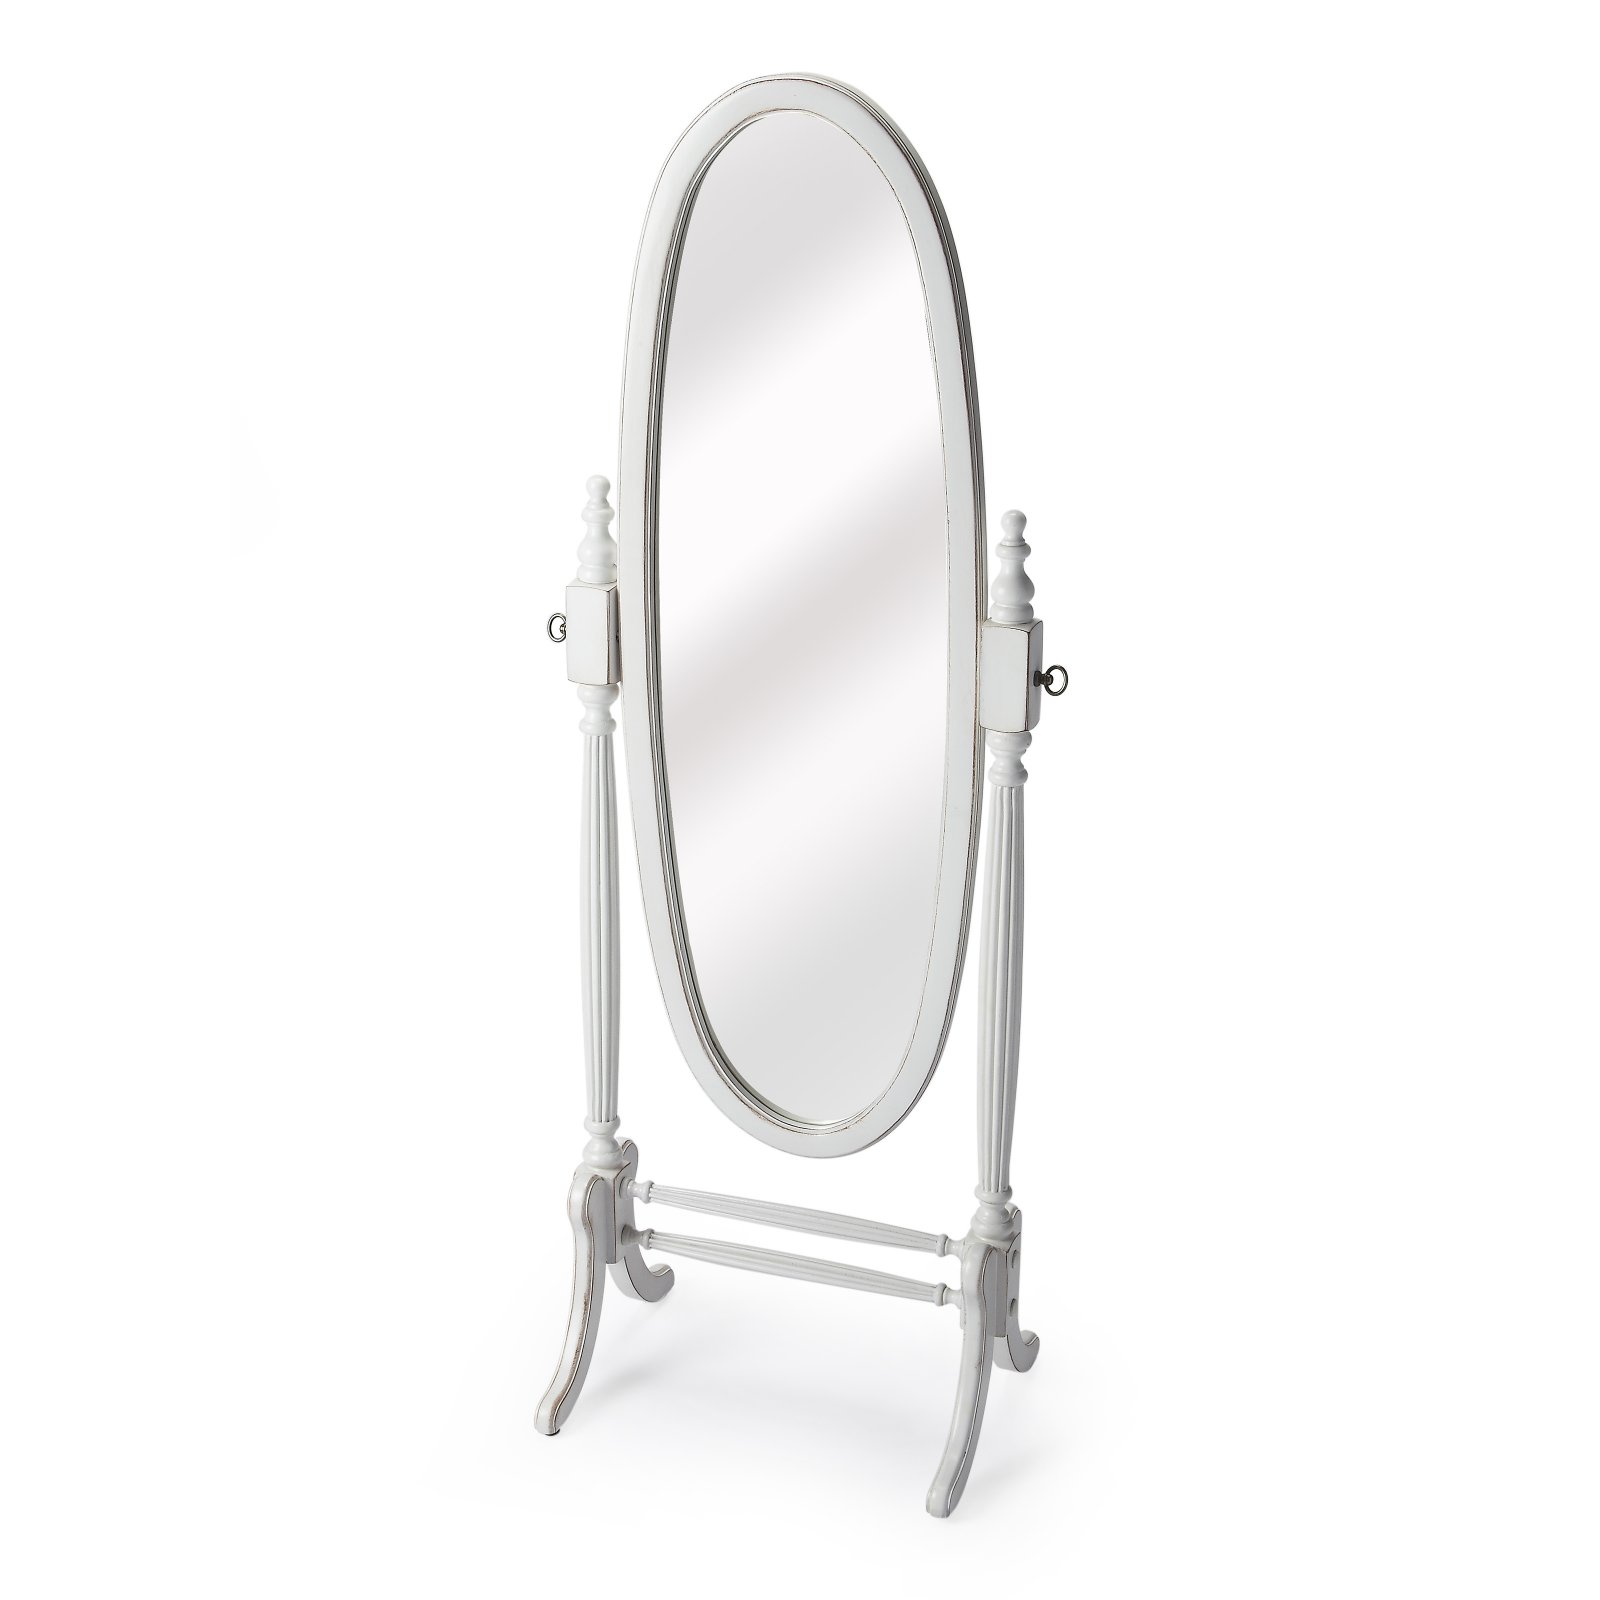 Butler Oval Cheval Floor Mirror by Butler Specialty